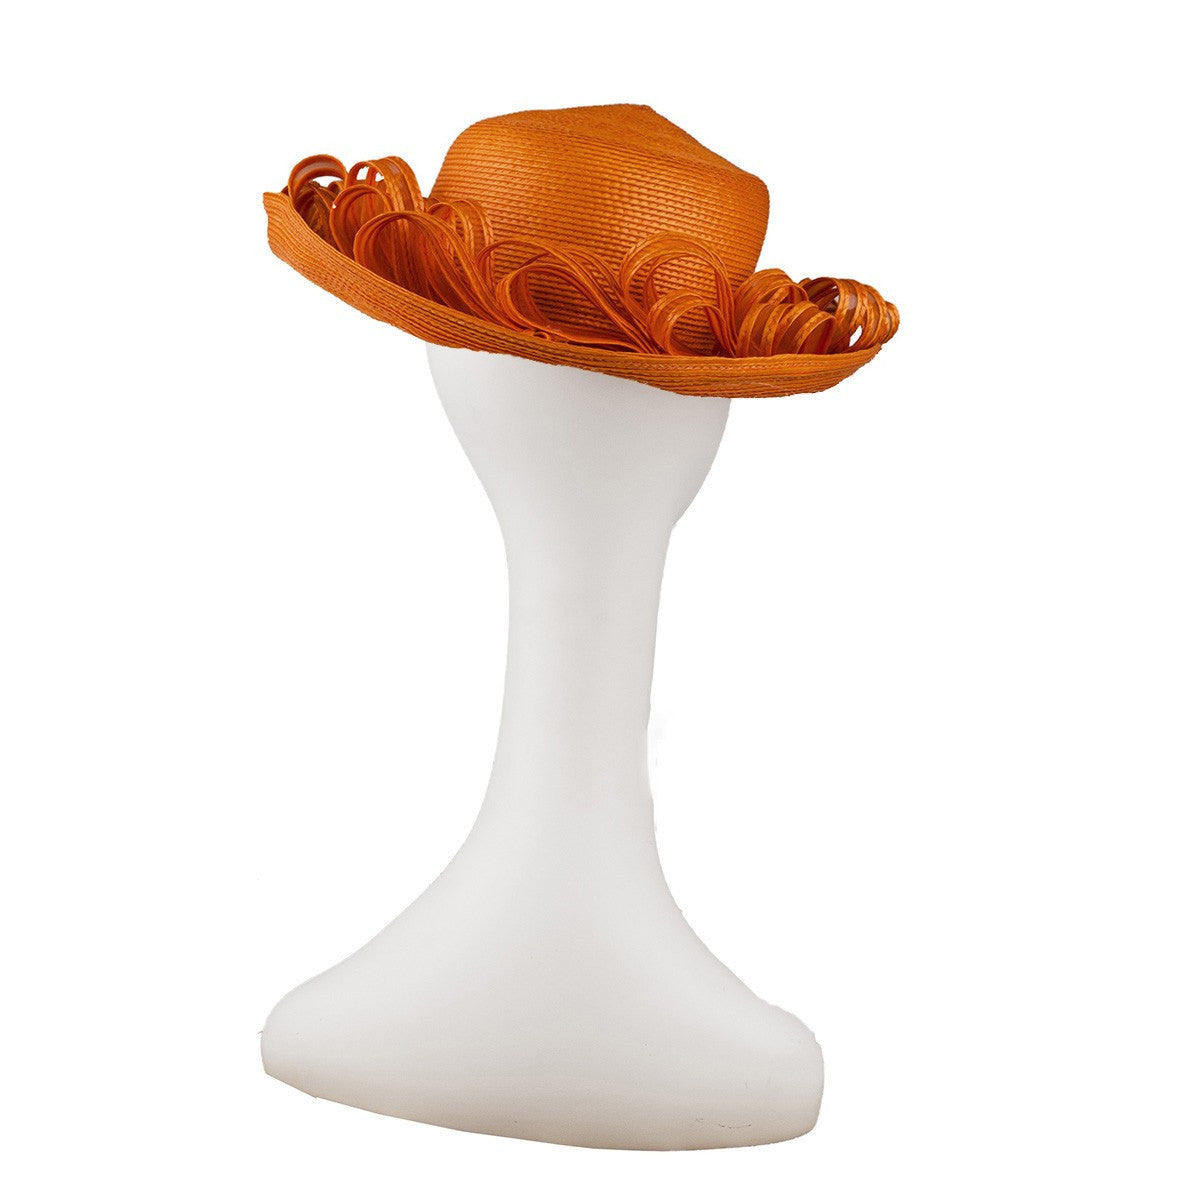 Orange Straw & Horsehair Hat by Don Anderson 4